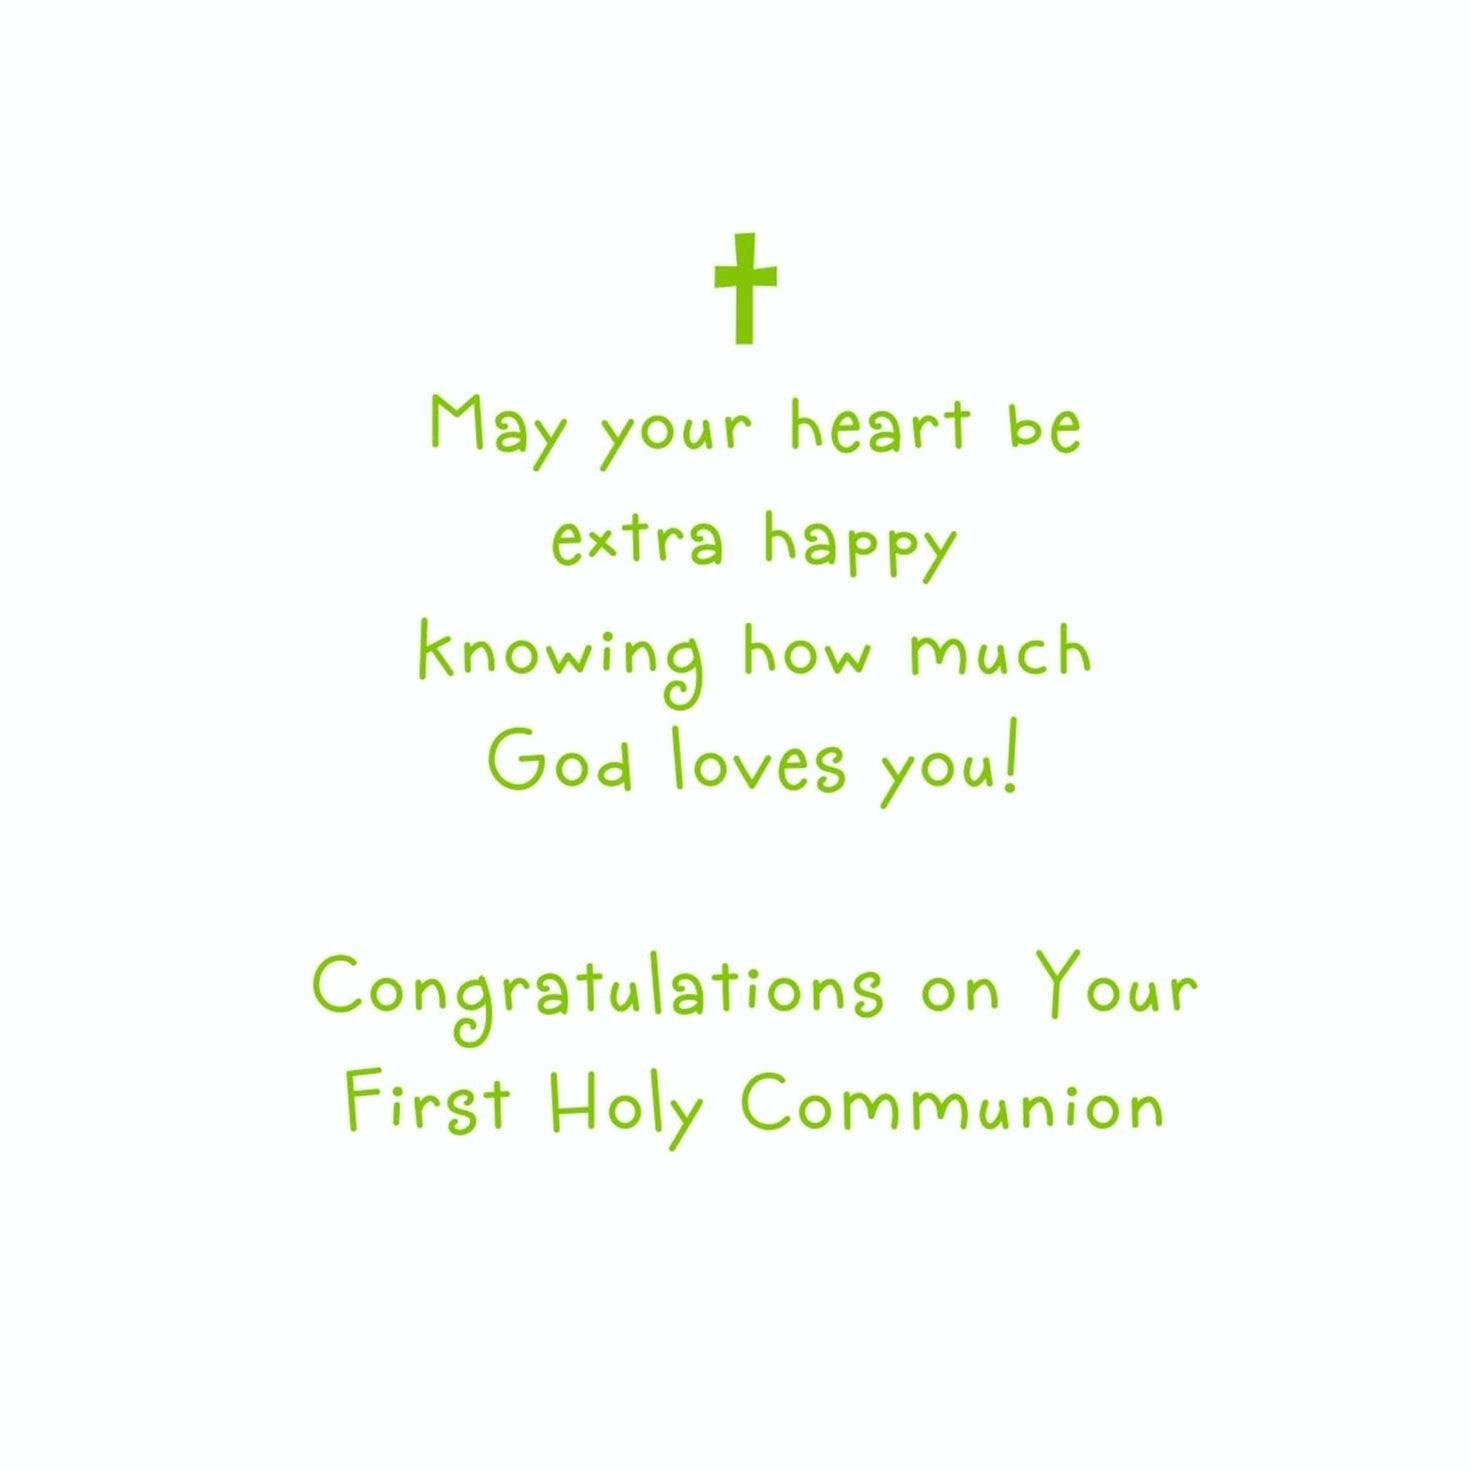 First Holy Communion Cards Printable Free - First Holy Communion Cards Printable Free